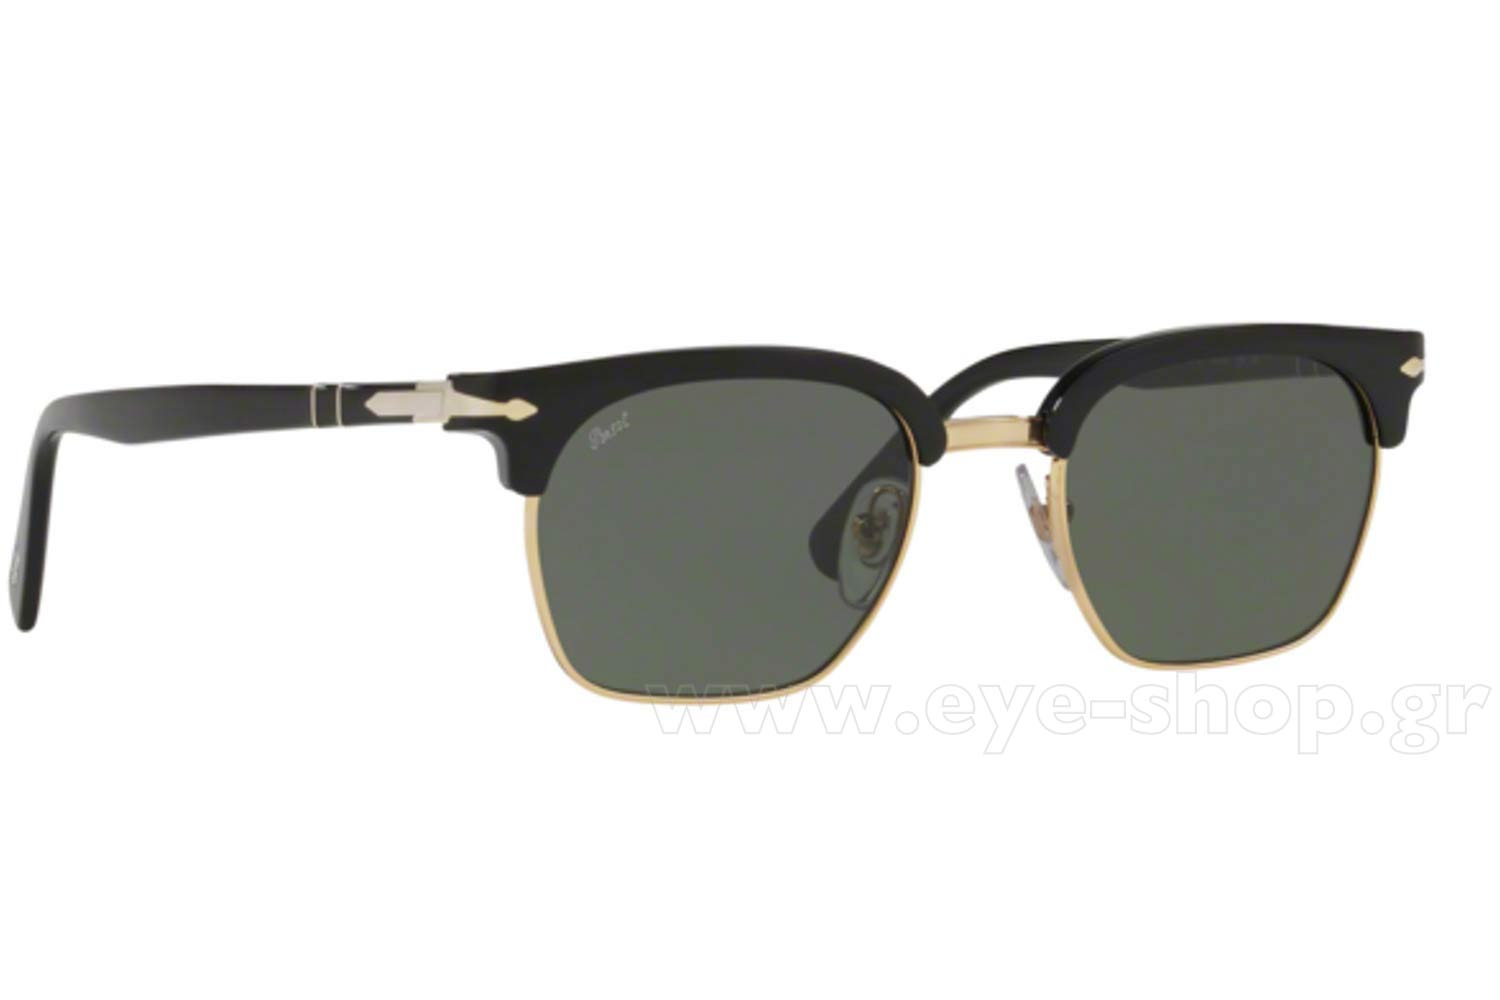 5afd9733ee SUNGLASSES Persol 3199S 95 31